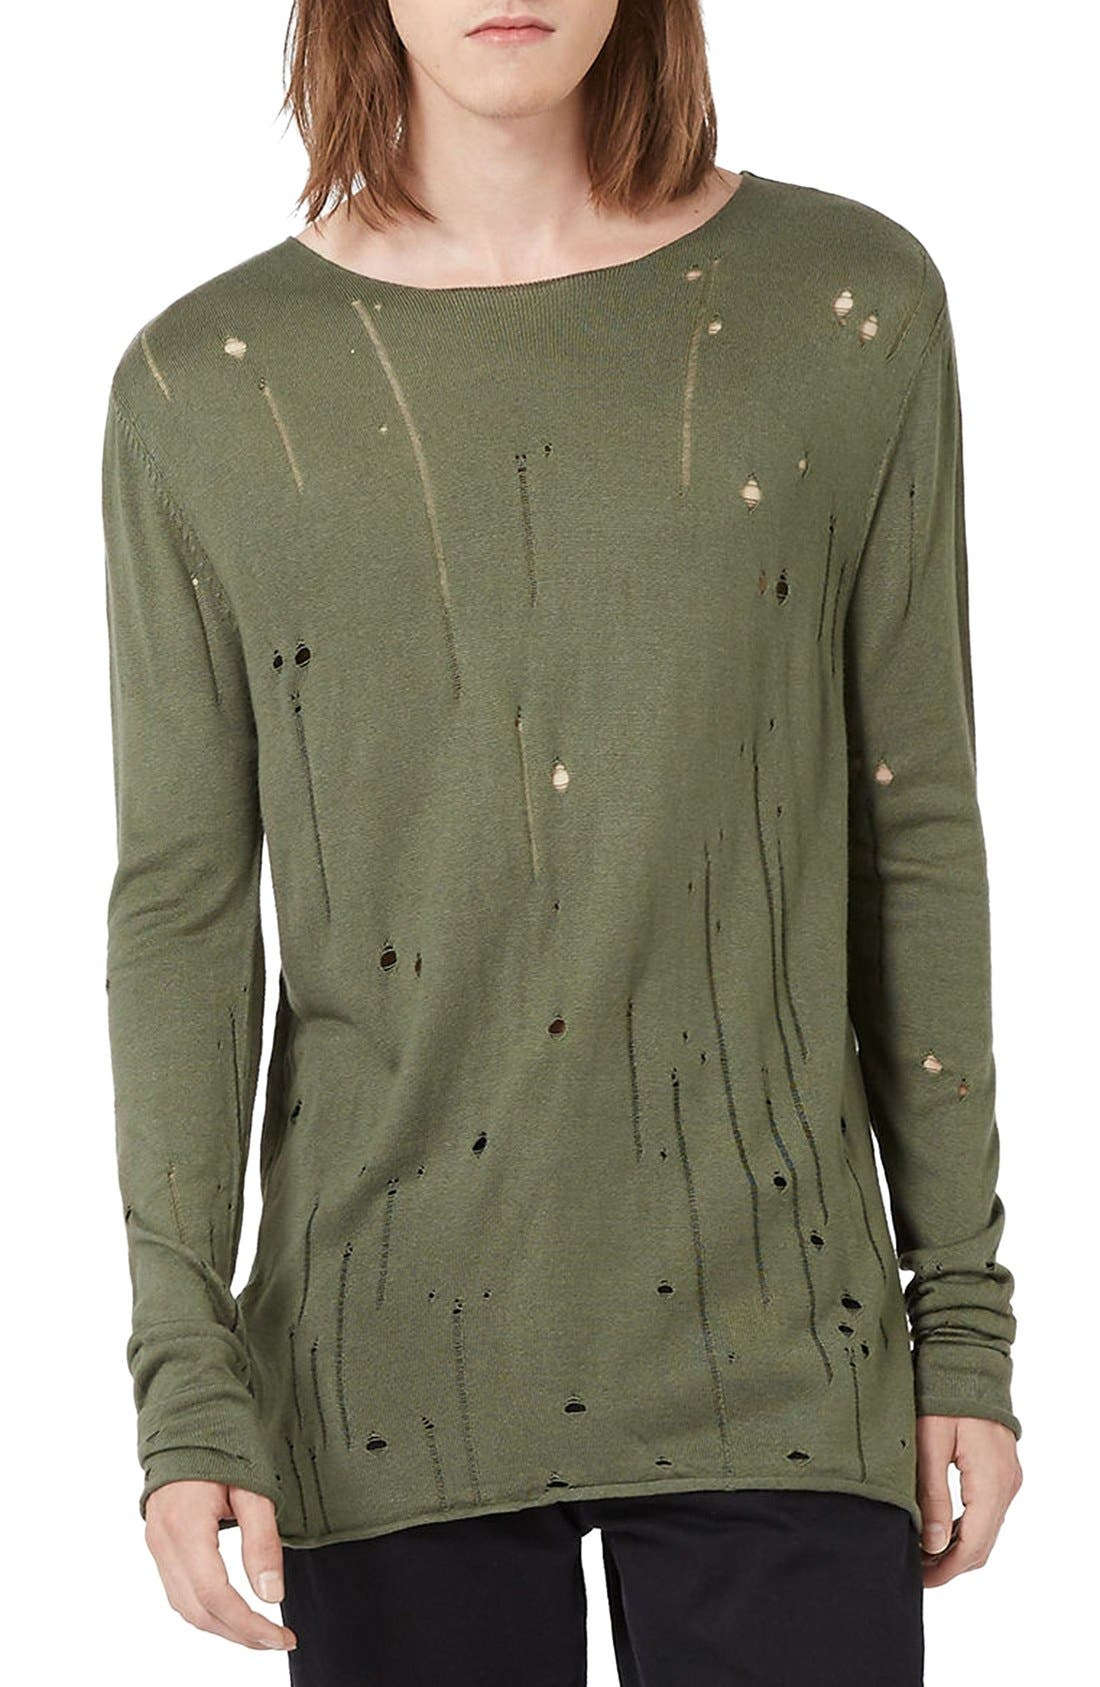 Alternate Image 1 Selected - Topman Moth Distressed Long Sleeve Knit T-Shirt